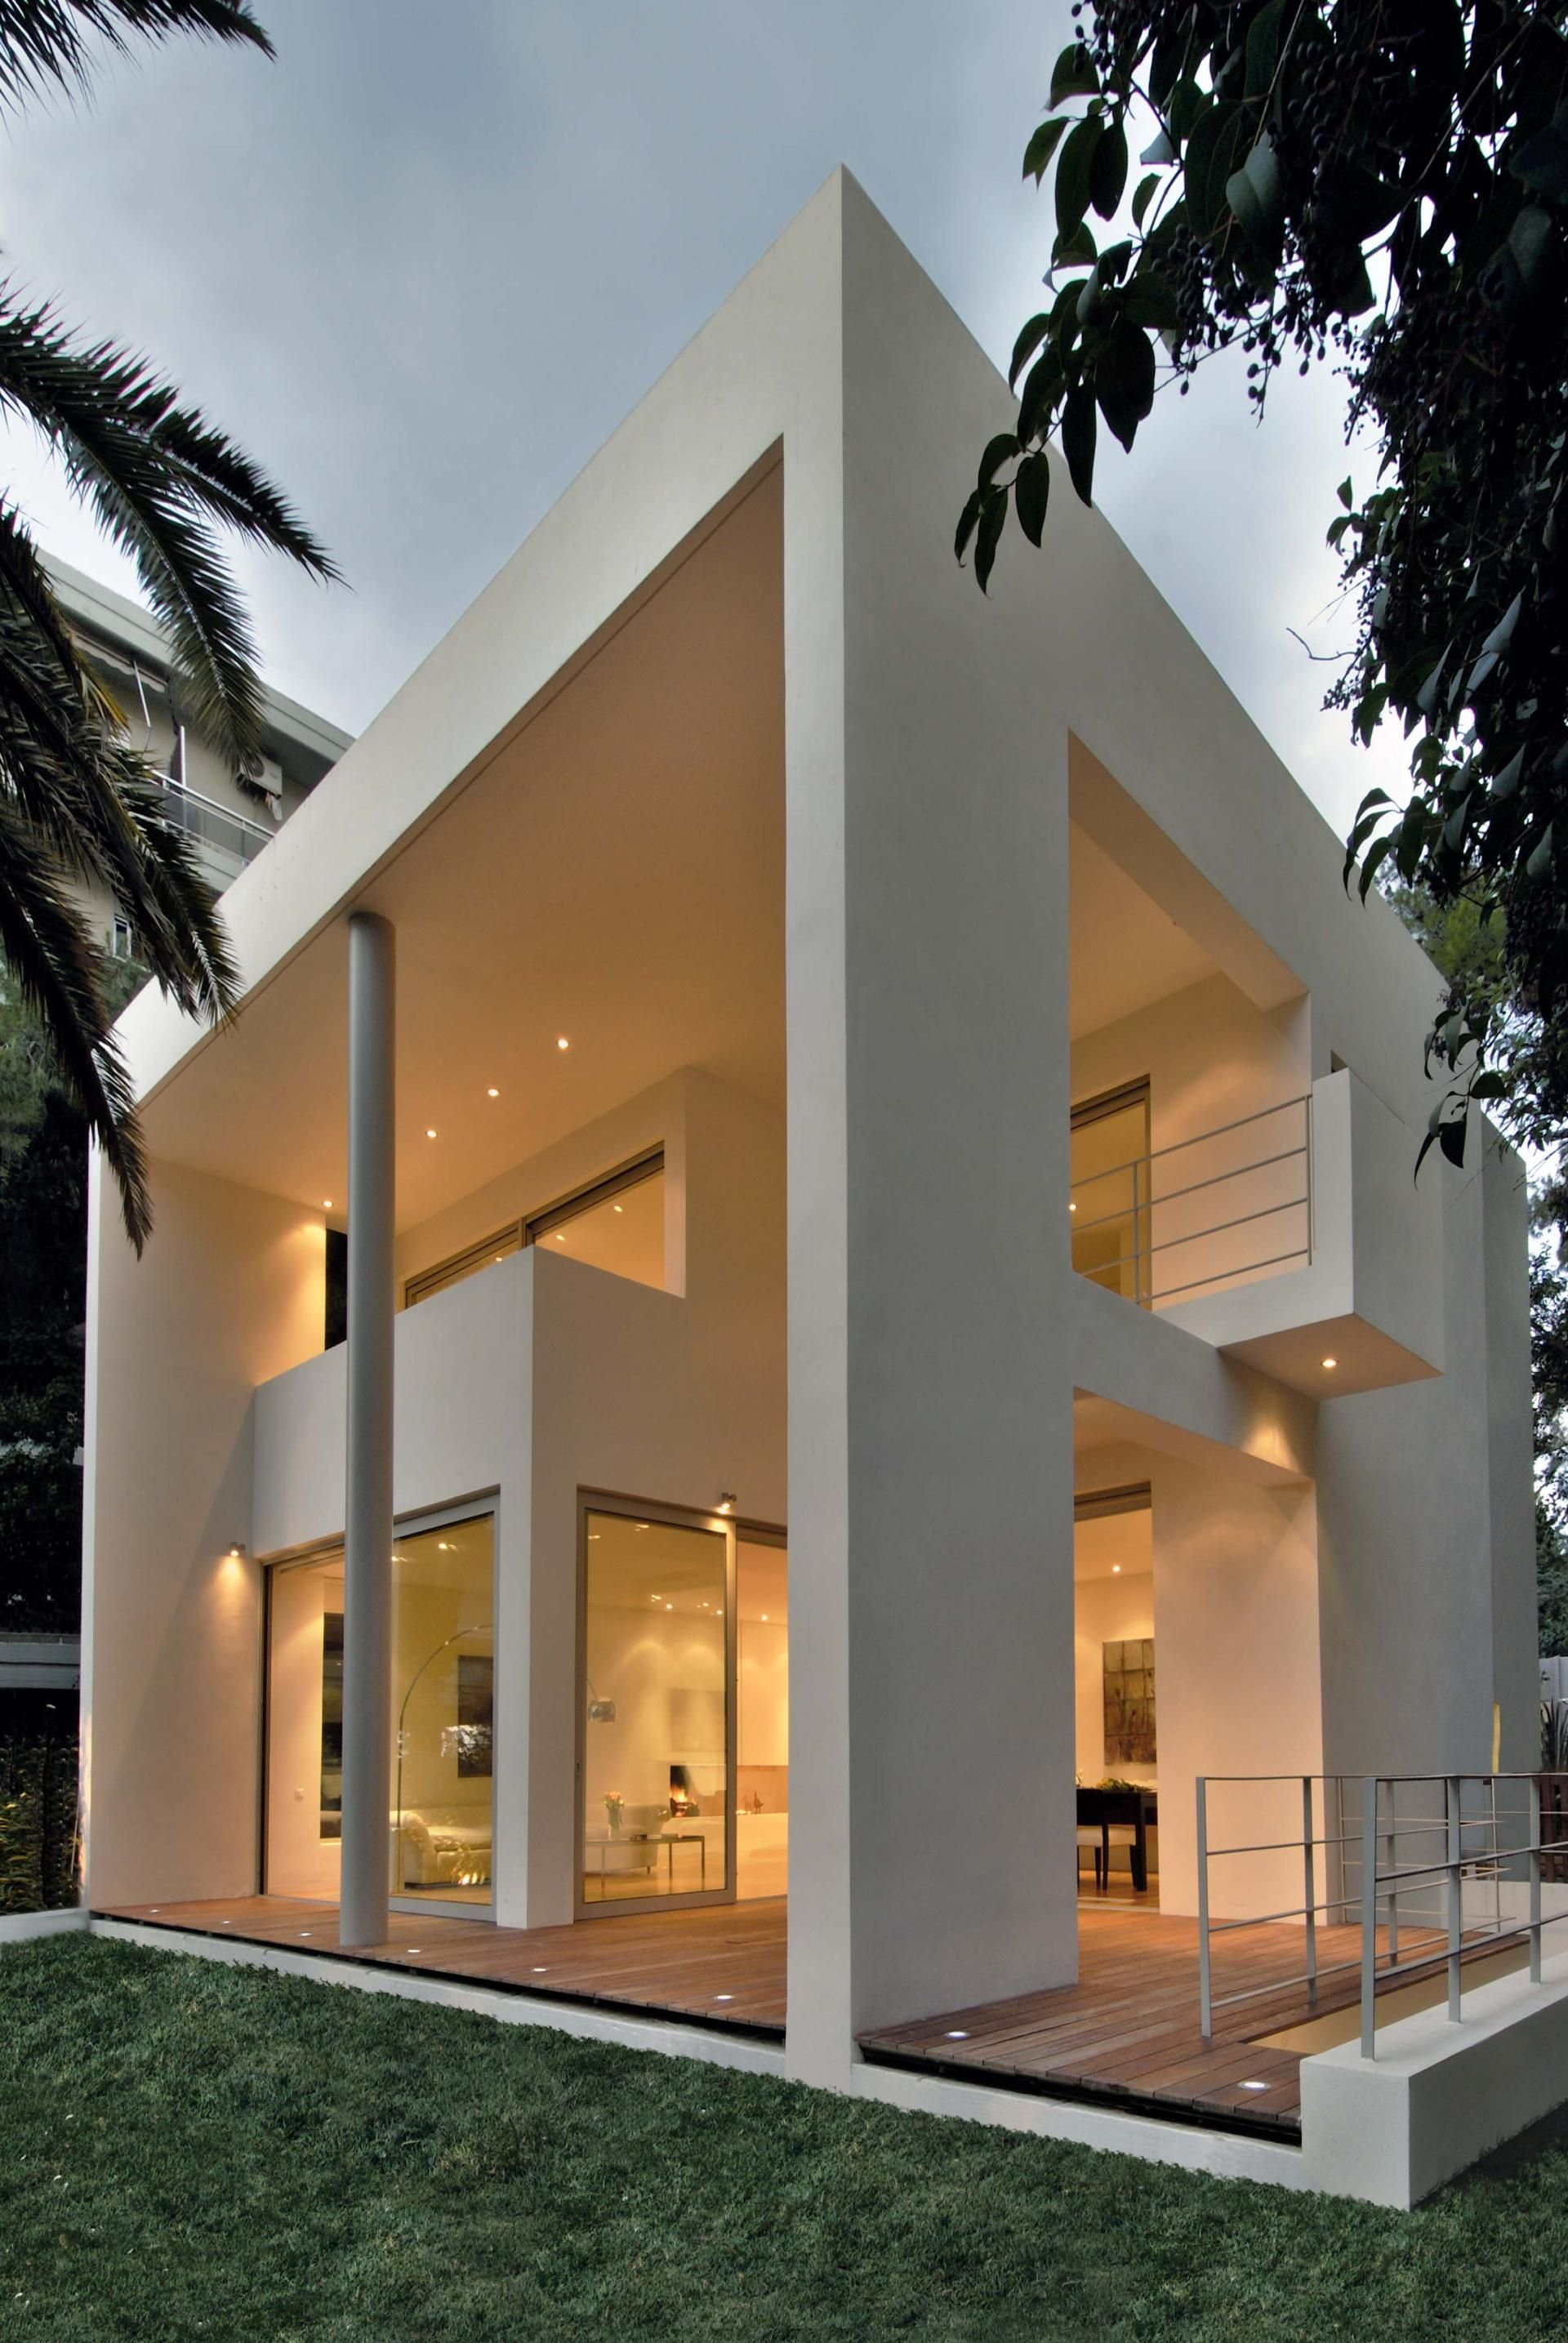 detached house in kifissia athens katerina valsamaki favorite find this pin and more on favorite architects designs by futmedia